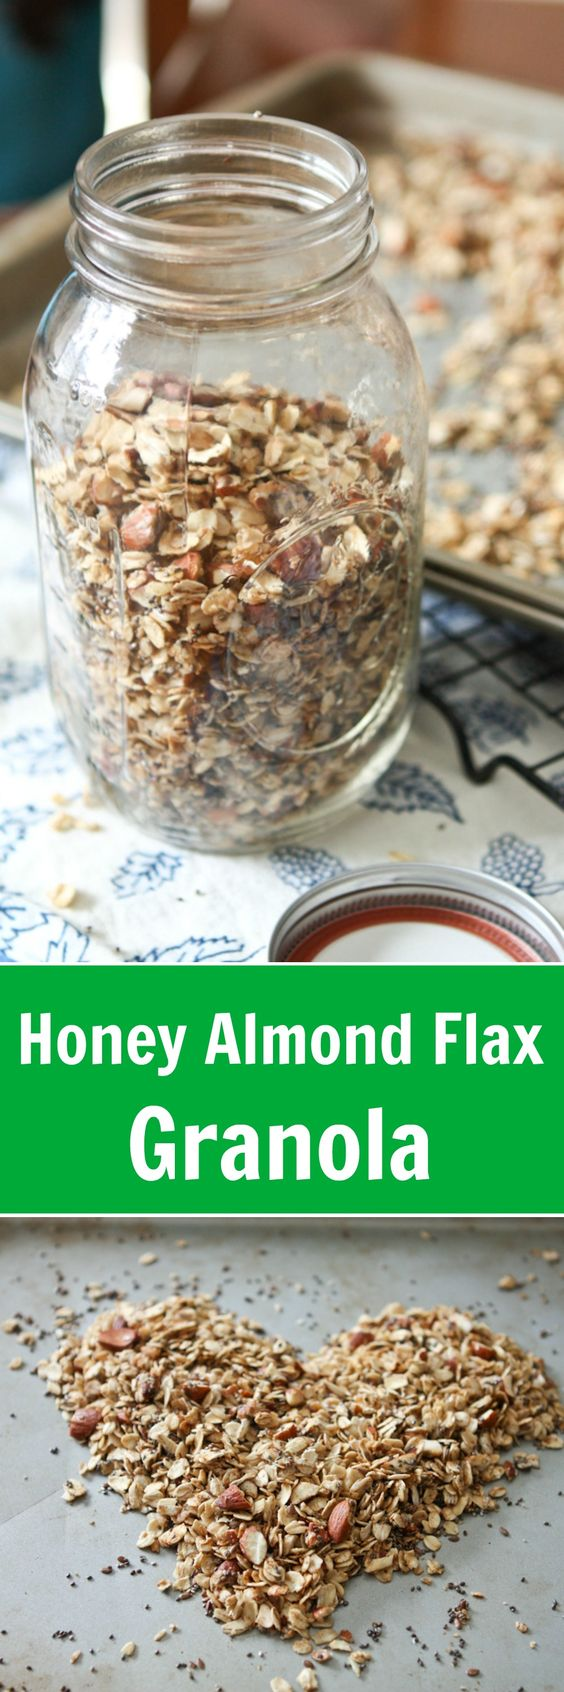 Honey Almond Flax Granola - one of my family's favorite granola ...